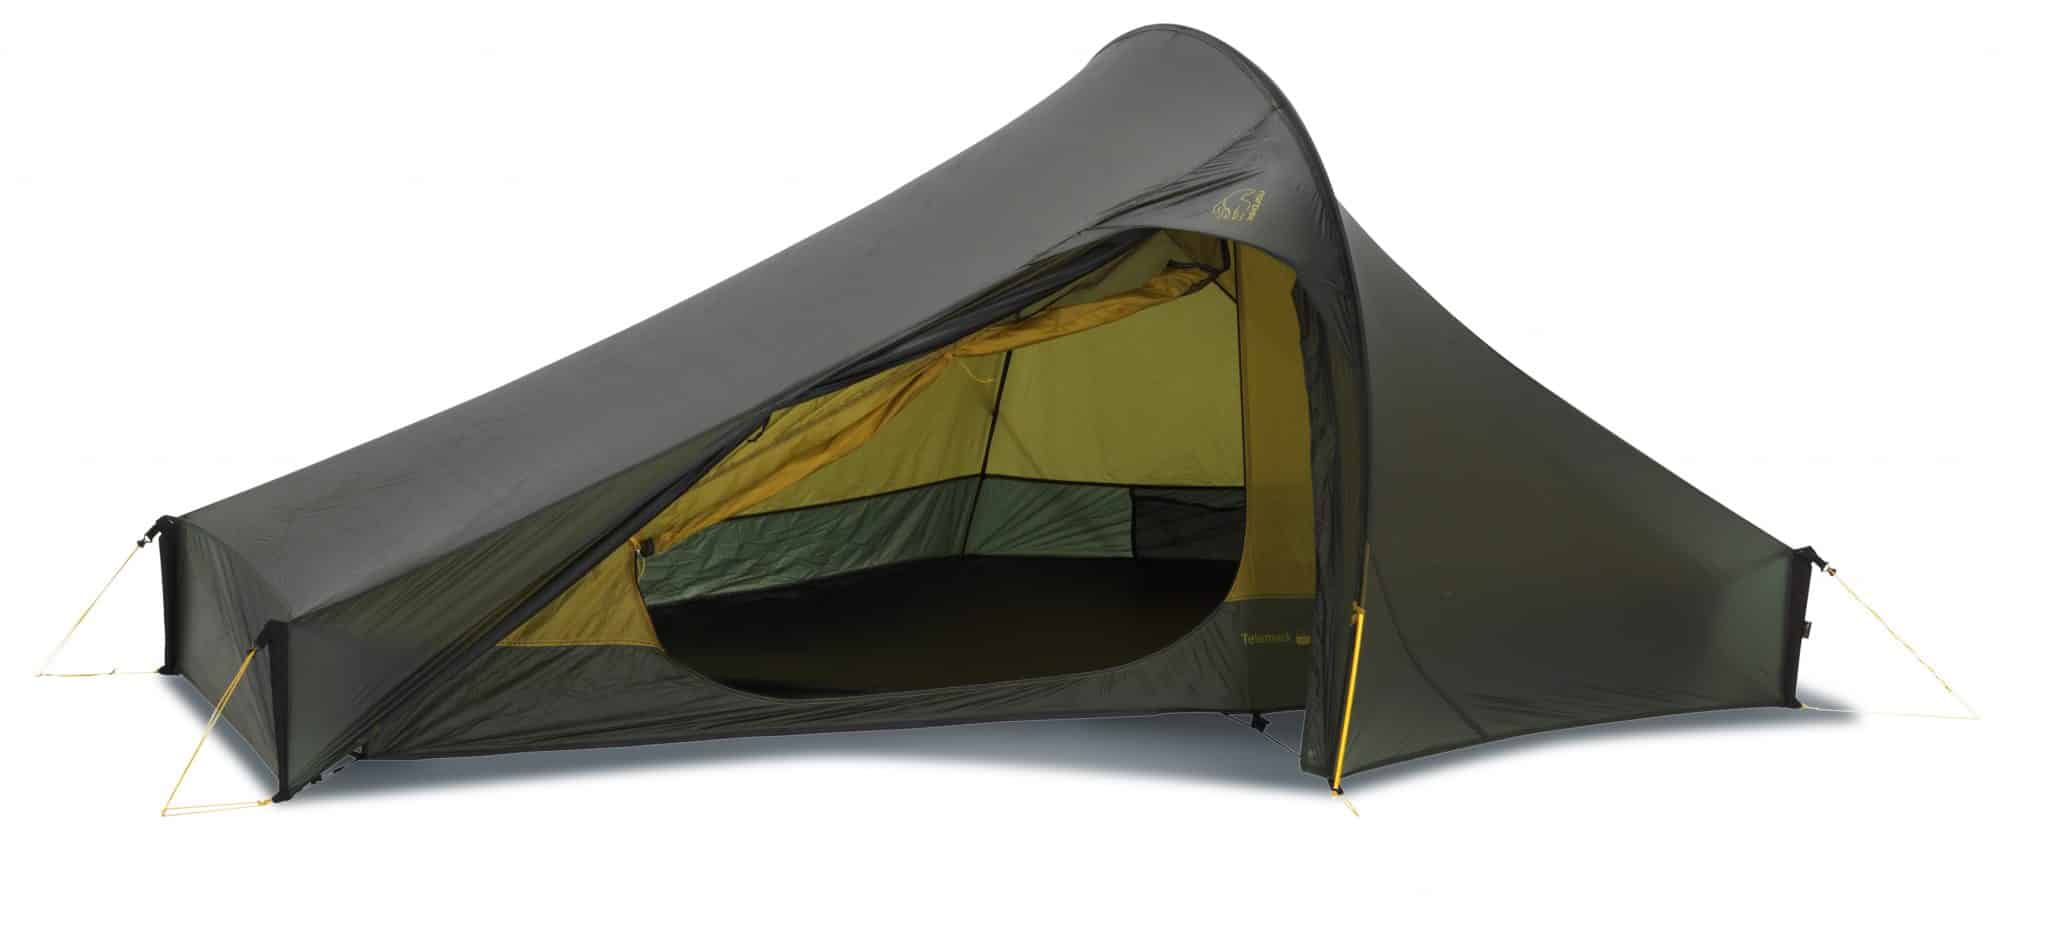 Nordic Telemark Top 10 Best Backpacking Tents  sc 1 st  Gear Assistant & Top 10 Best Backpacking Tents - 1 Person Tents for Traveling